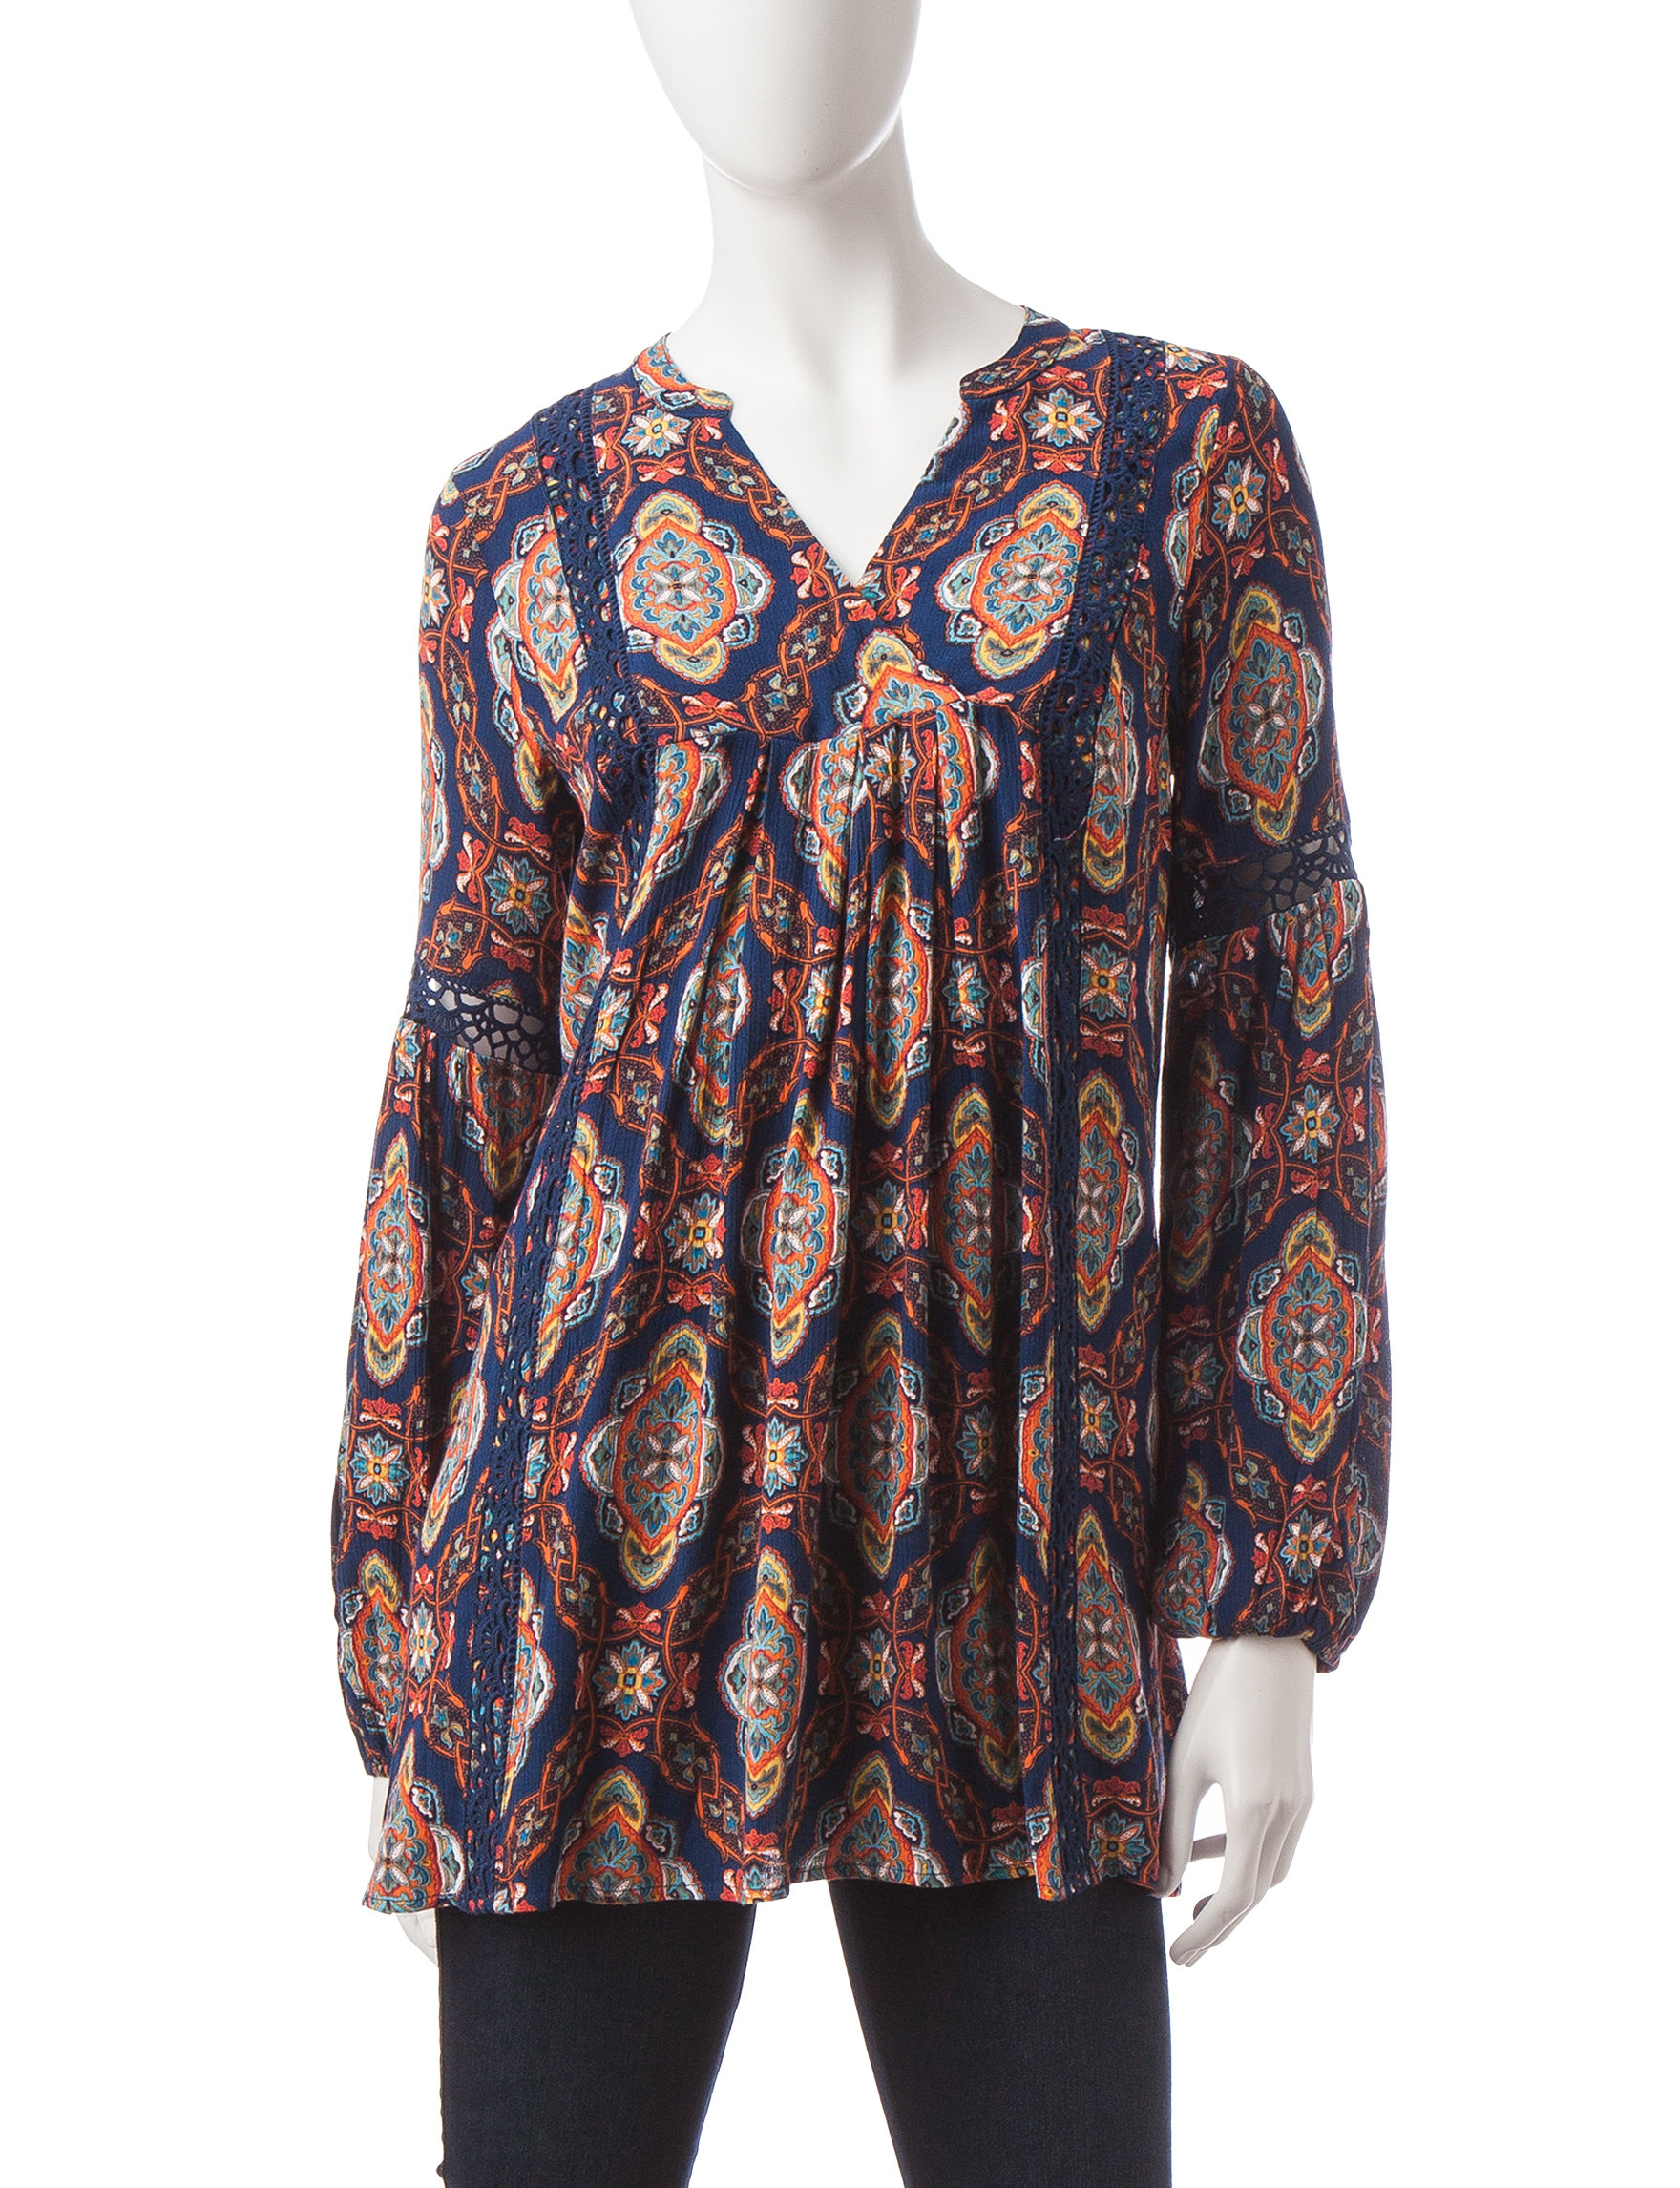 Signature Studio White / Multi Shirts & Blouses